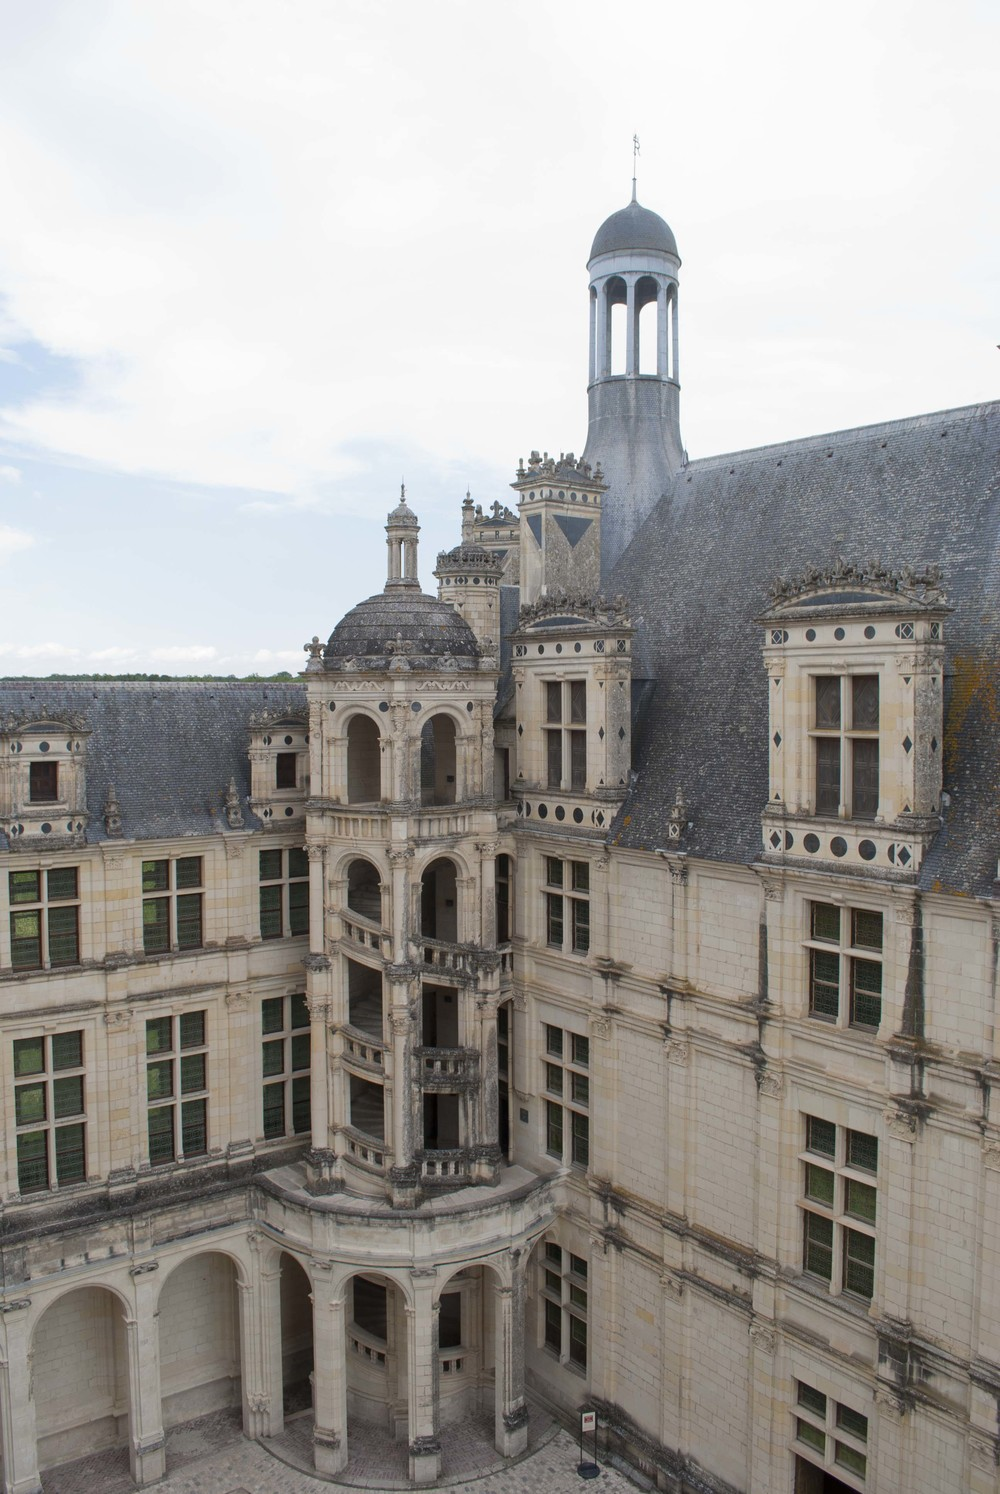 July_2012_Chambord_Le_chateau_0208.jpg